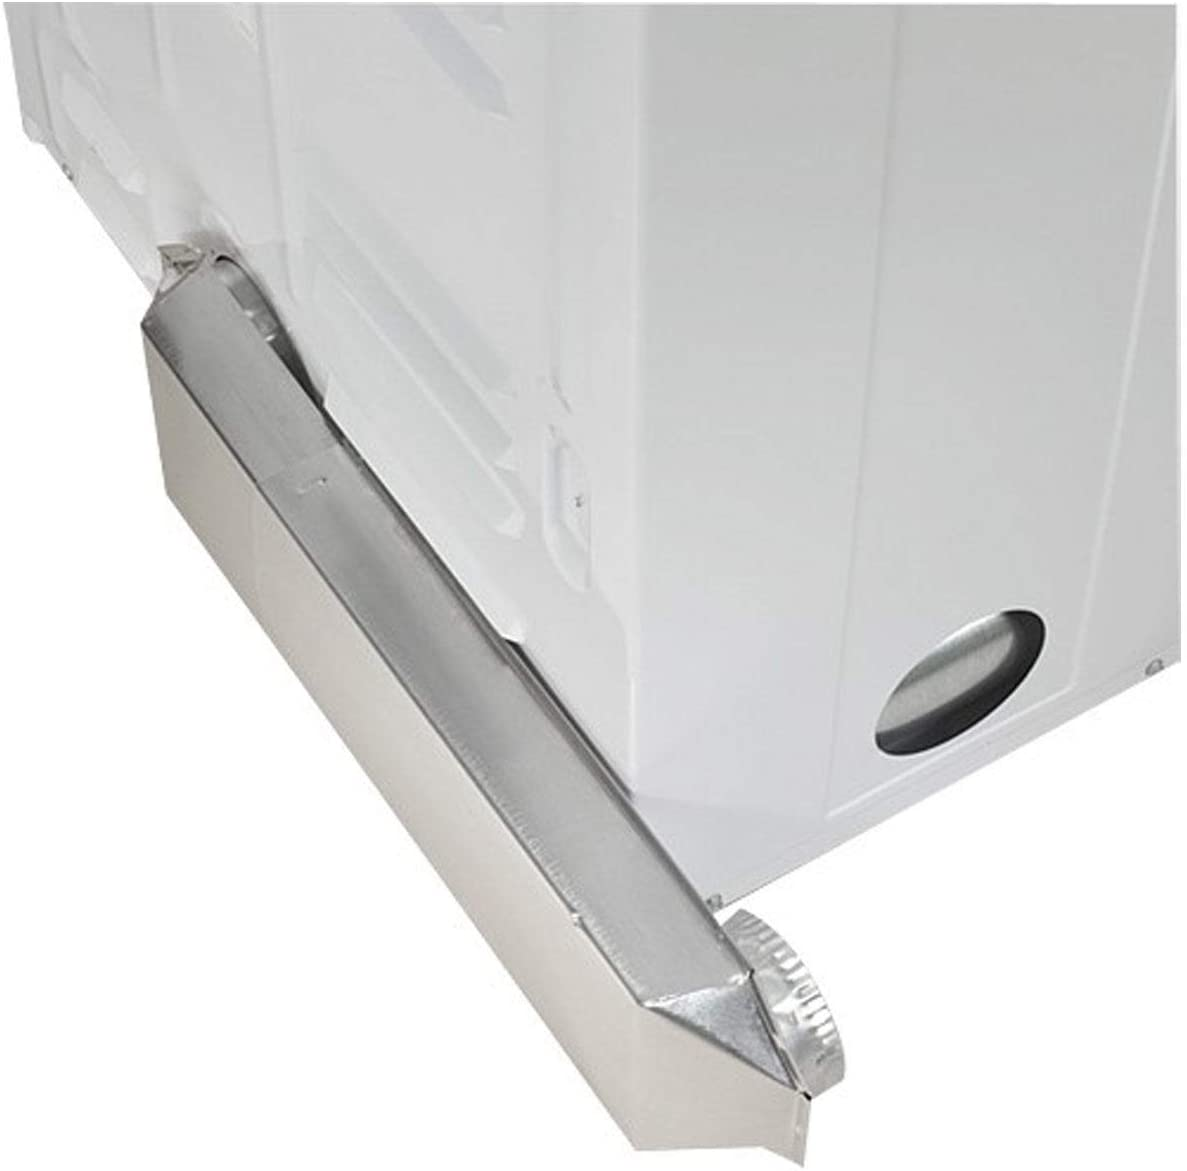 Copperfield 89636 18 Inch-29 Inch Clearance Per Wholesale Finally popular brand Dryer Vent Close